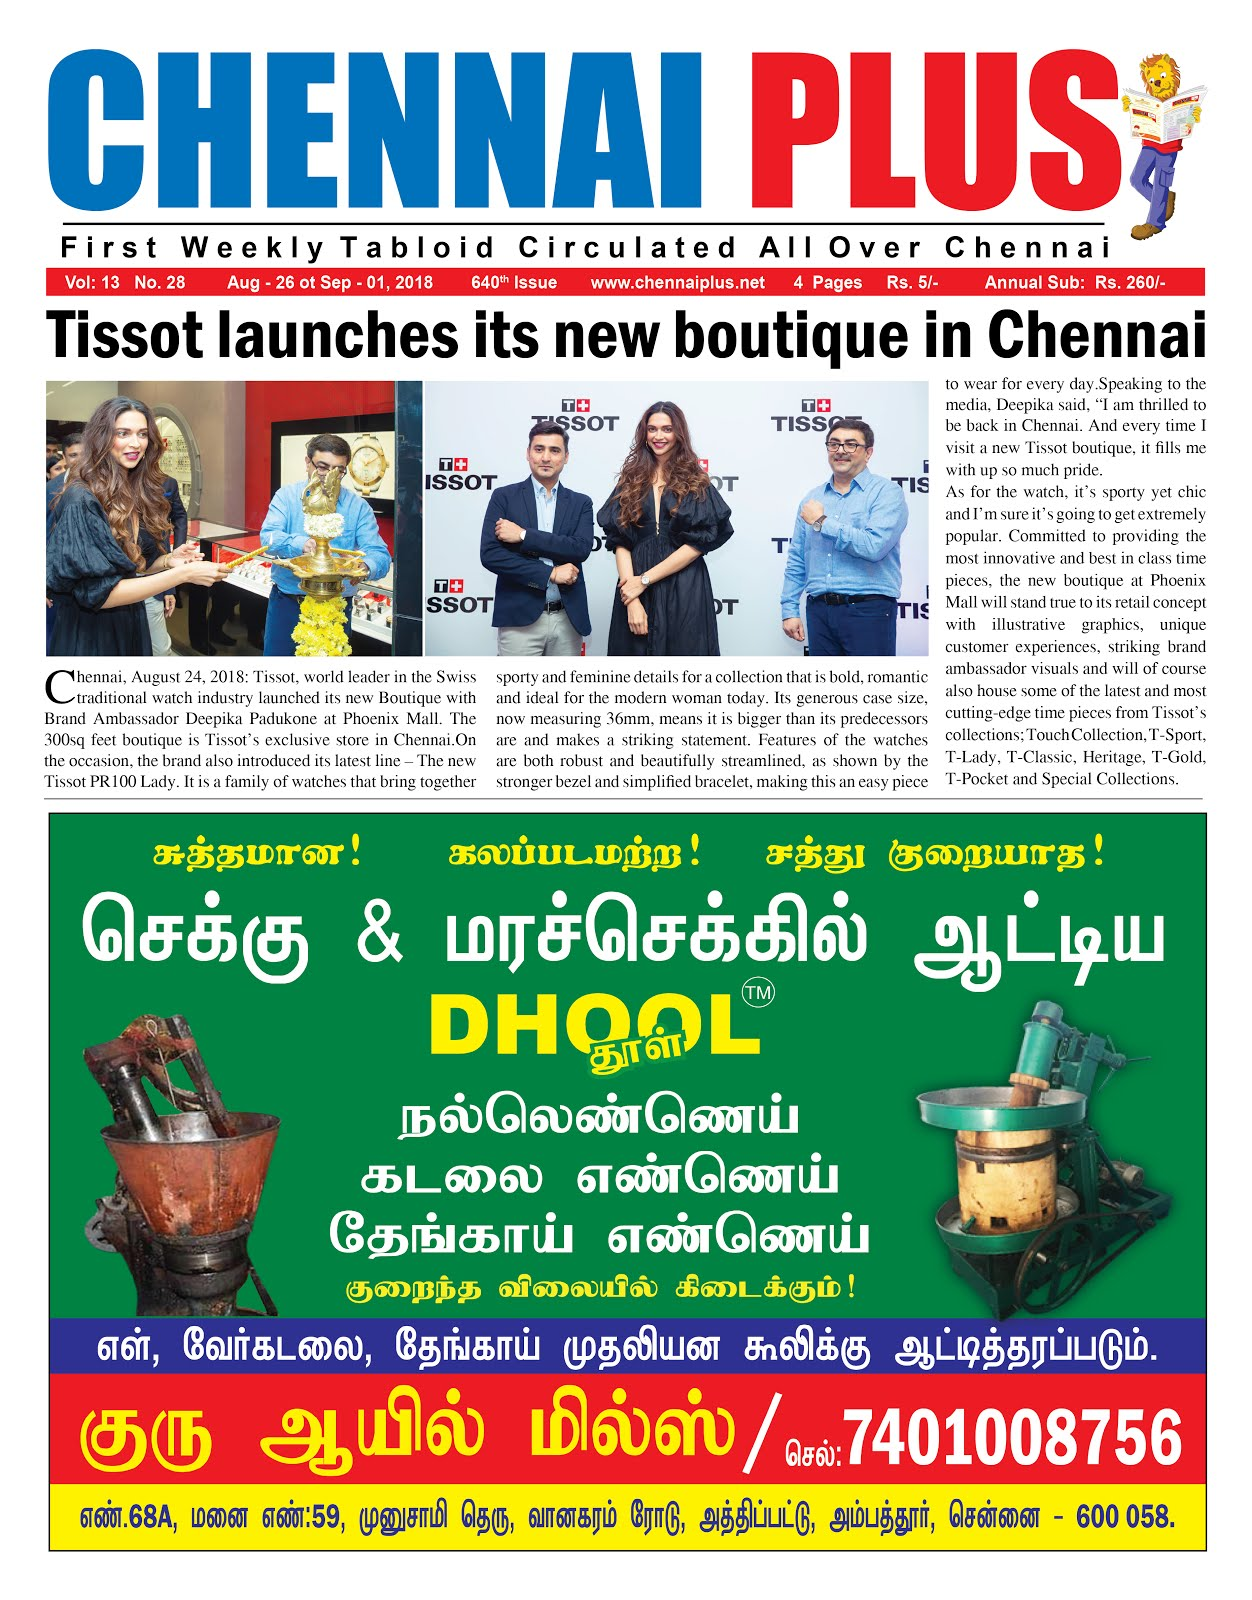 Chennai Plus_26.08.2018_Issue